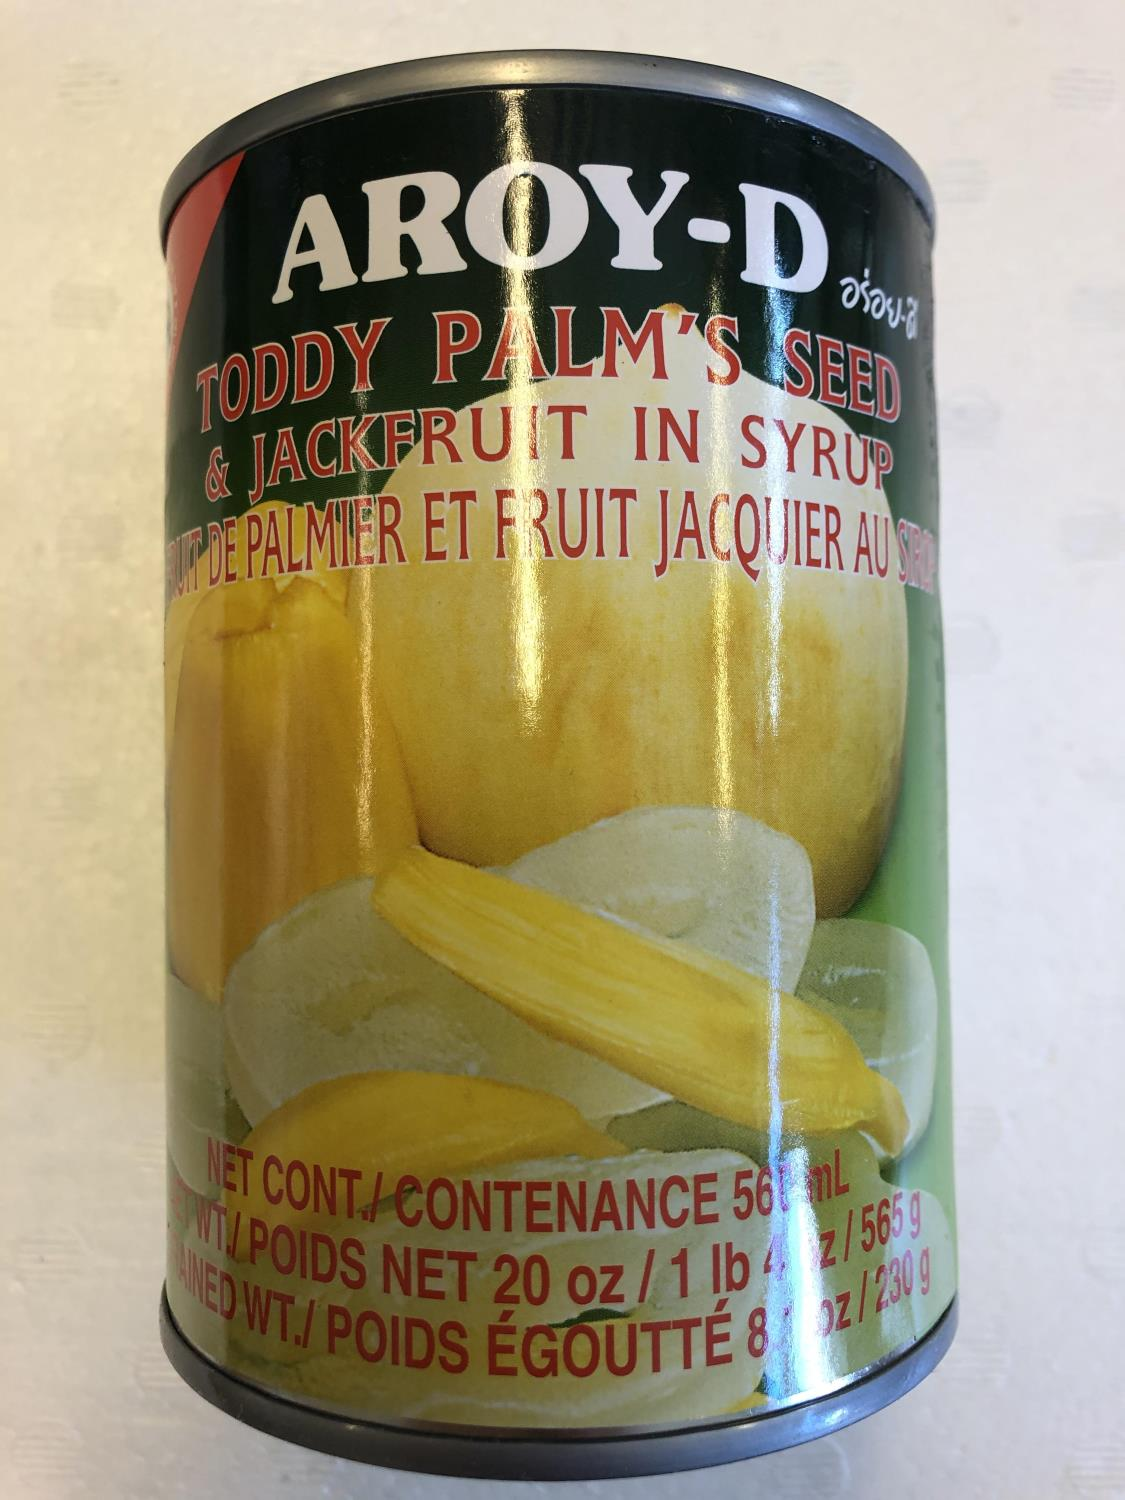 'AROY-D Toddy Palm & Jackfruit in Syrup 565gr